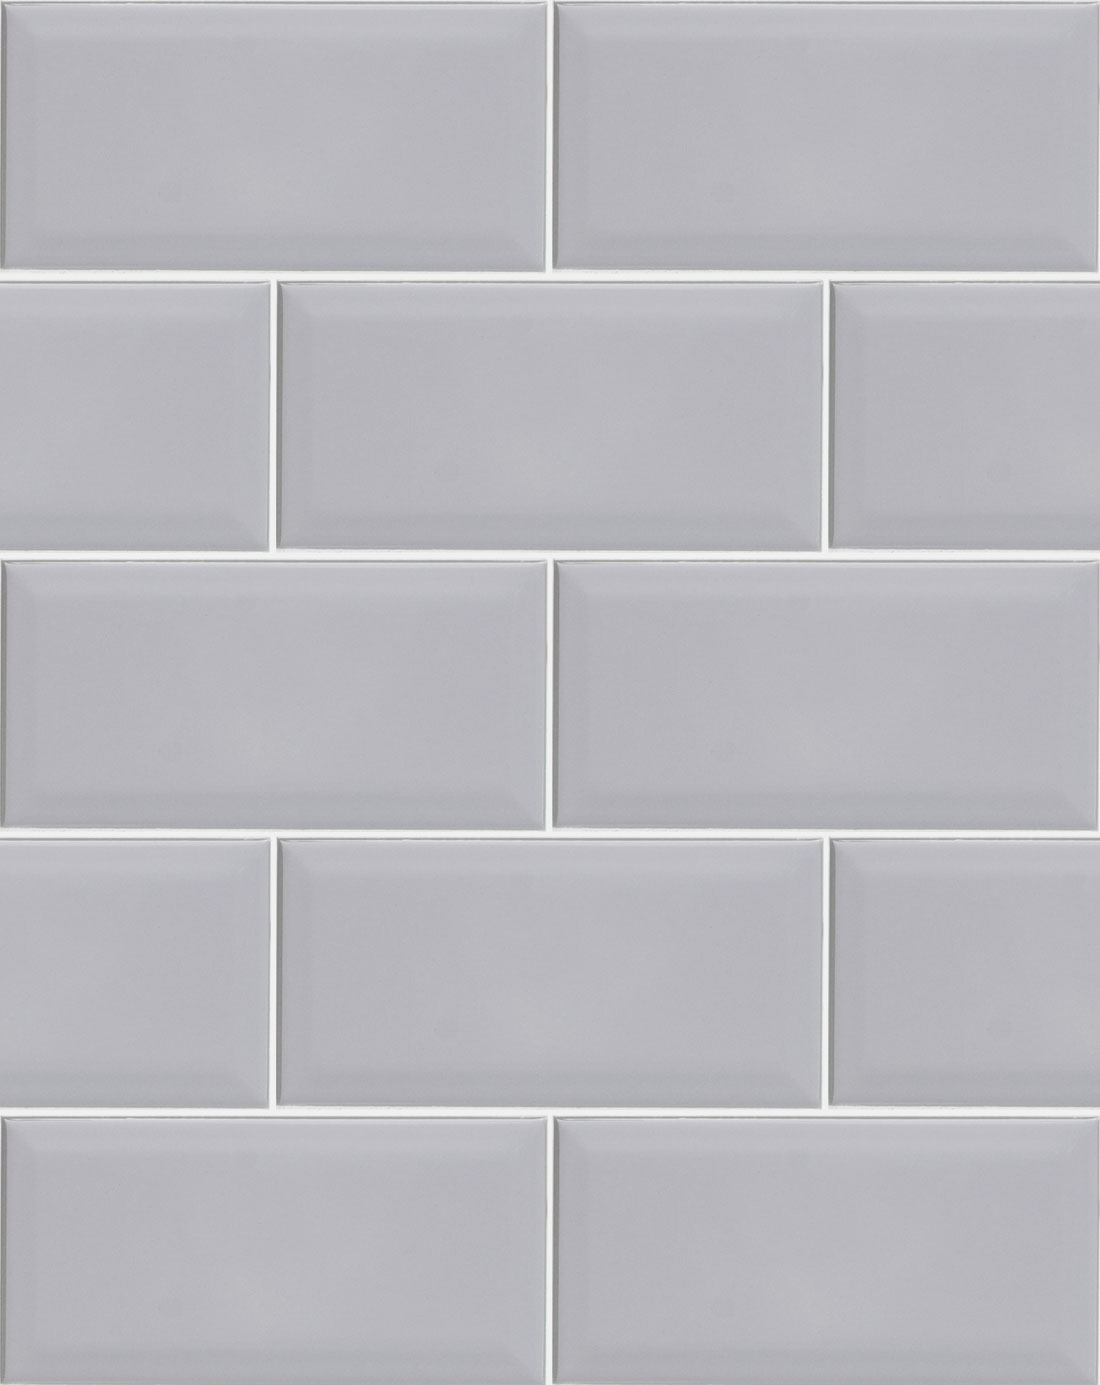 kezcreative inspirational matt com kitchen grey porcelain face of unique effect wall tiles amp split stone slate floor bathroom